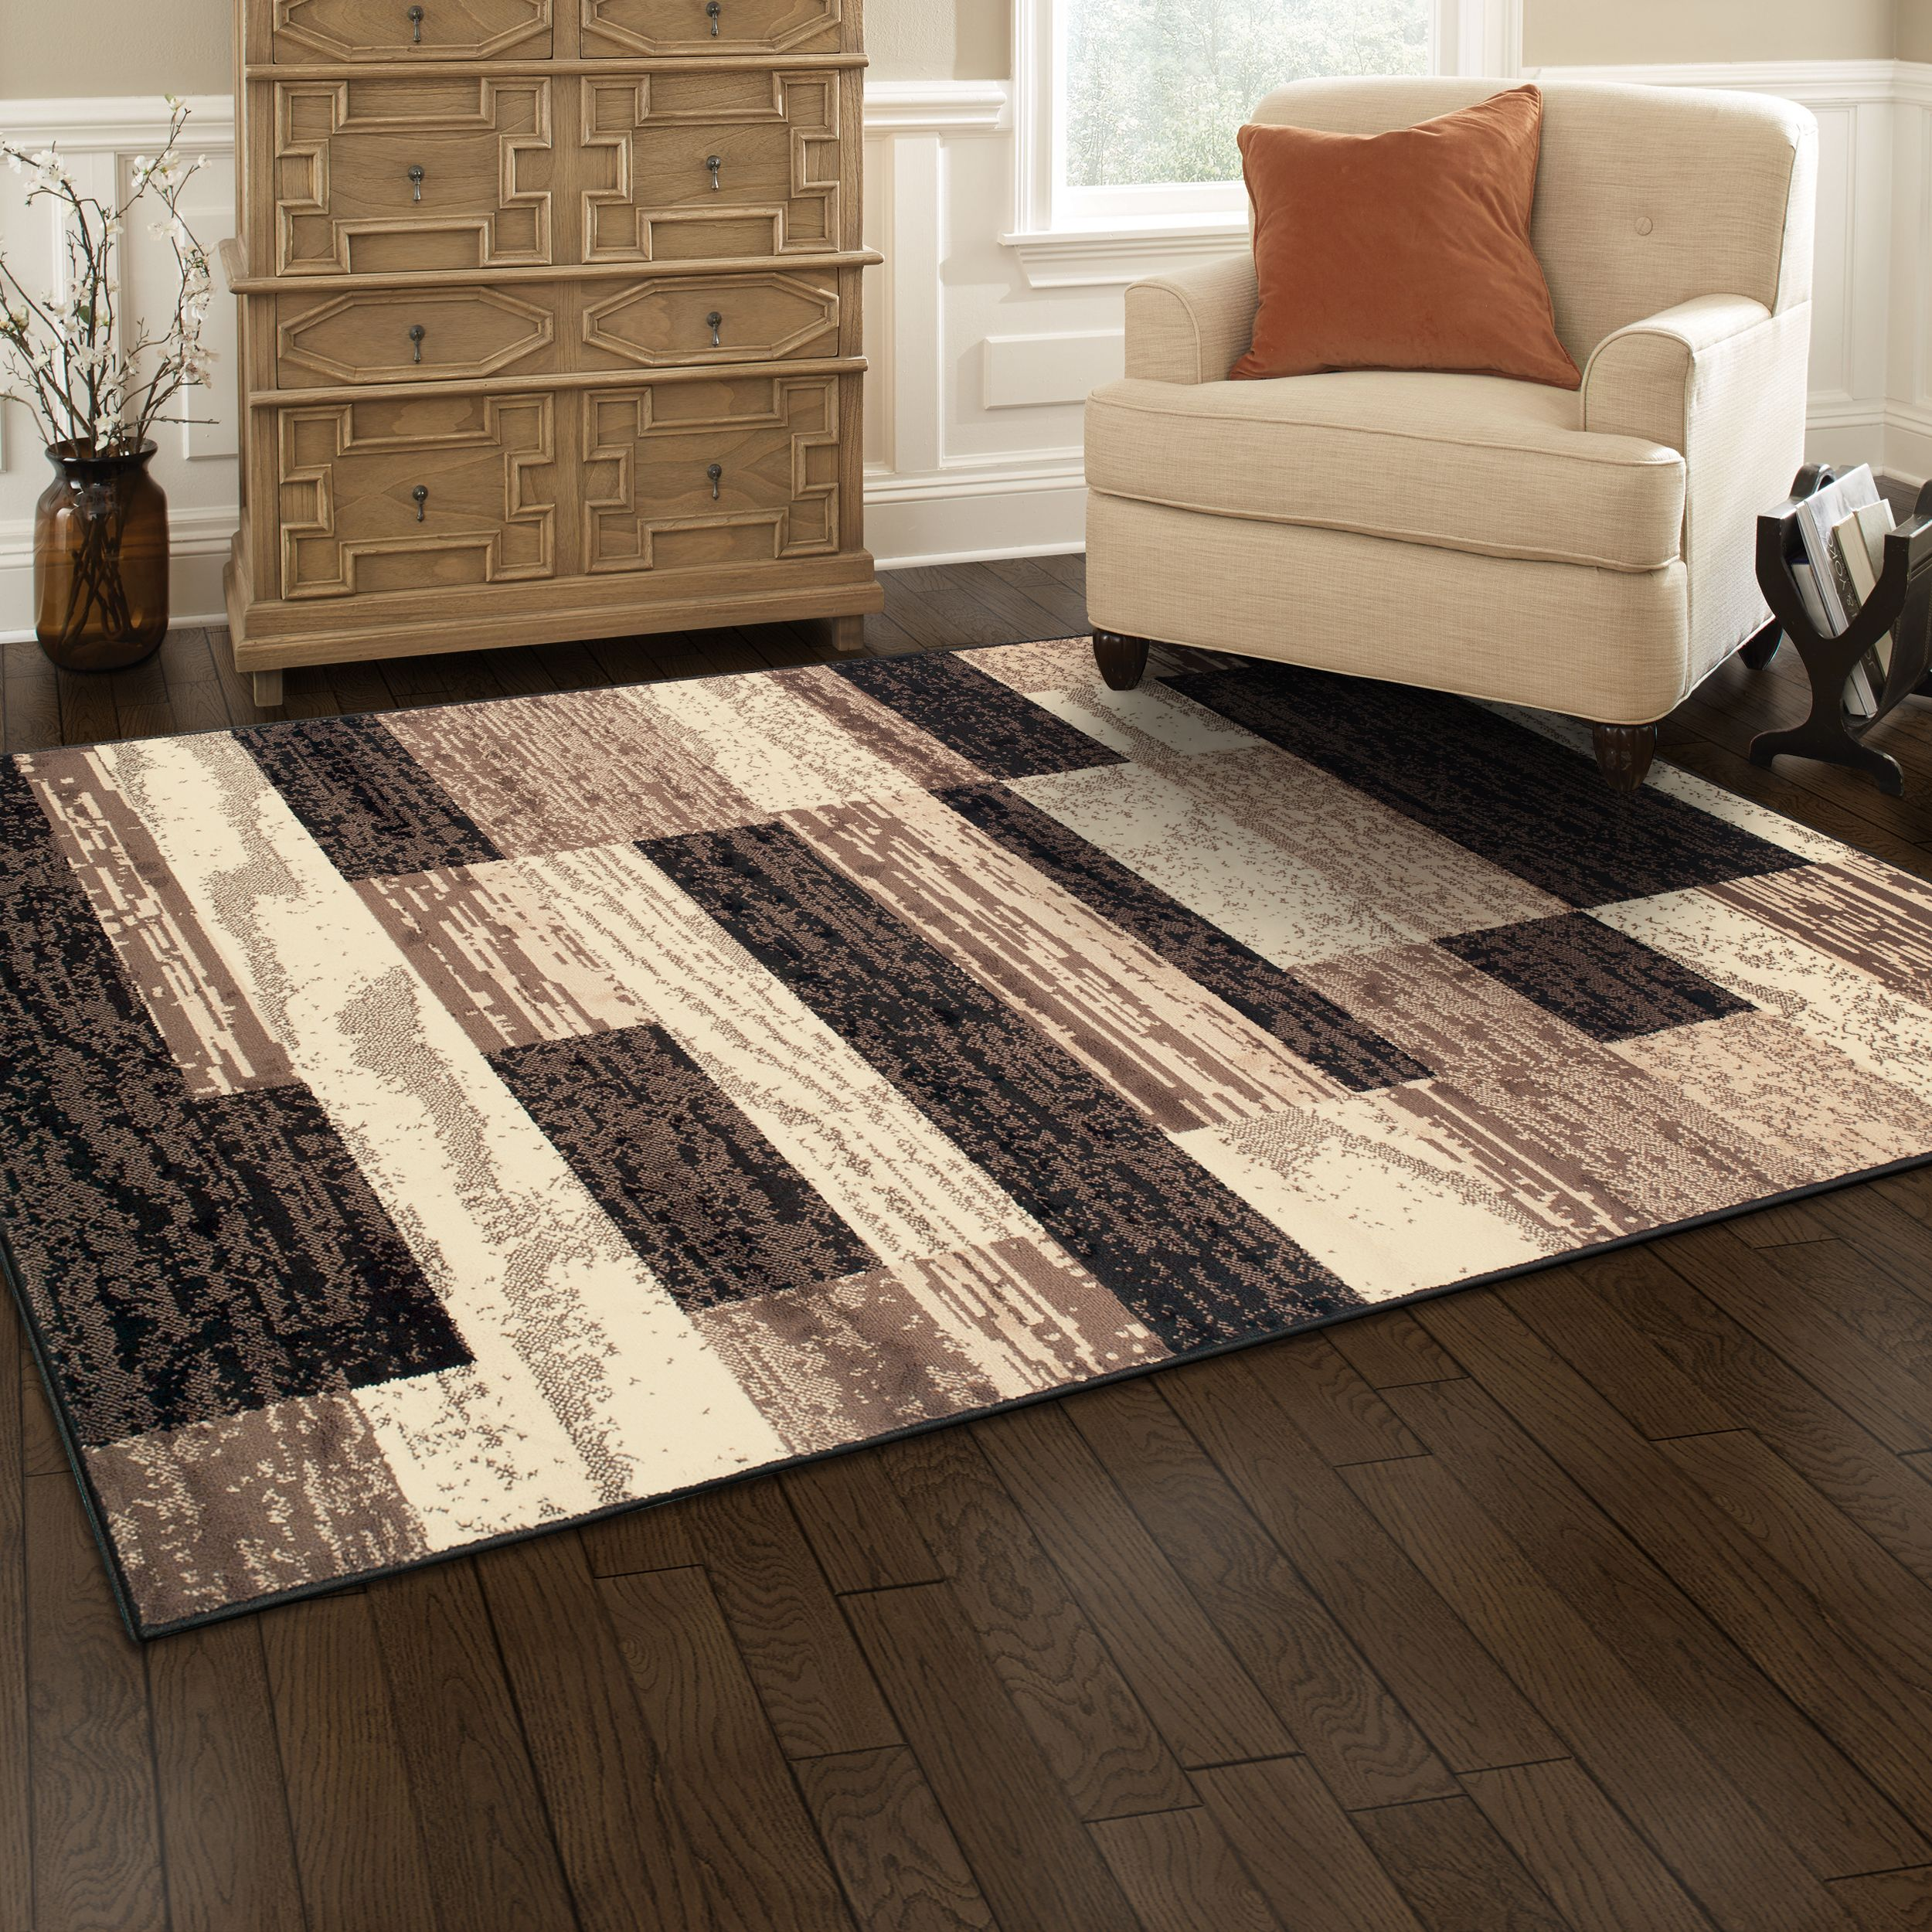 Superior Rockwood Collection With 8mm Pile And Jute